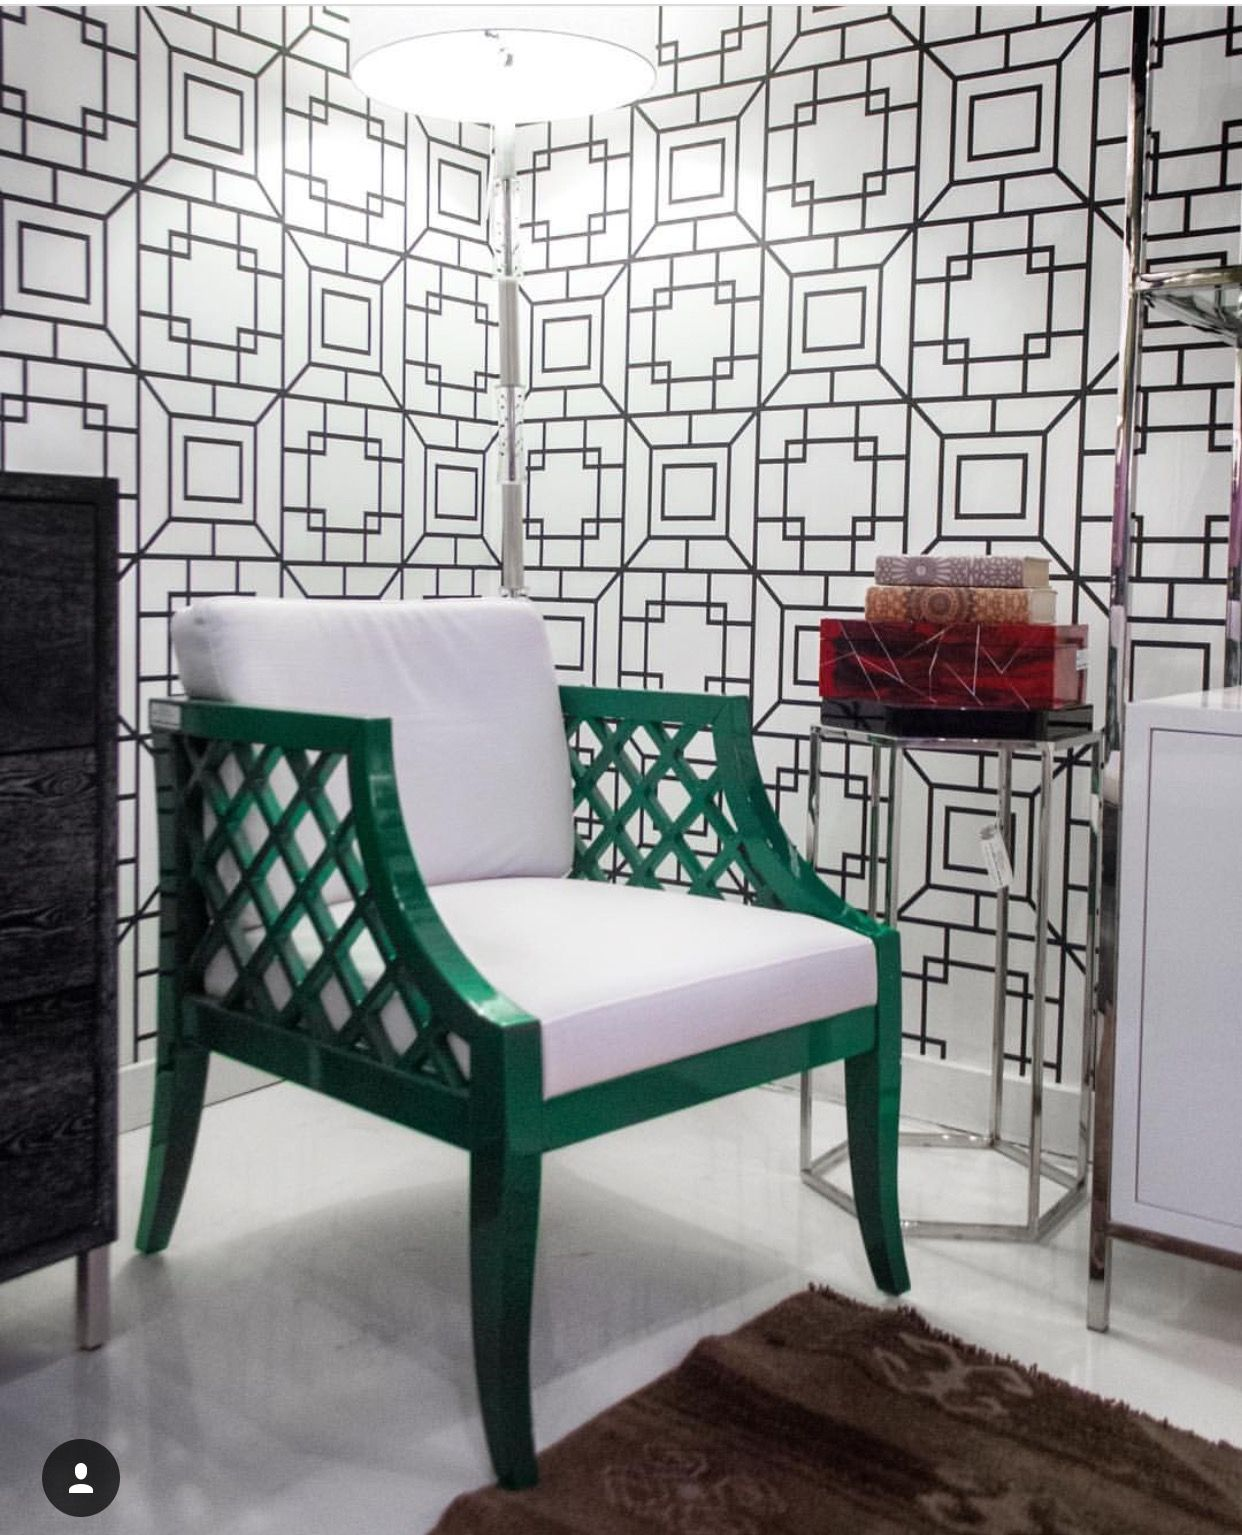 Pin by Nawal on Wall Art   Metallic painted furniture ...